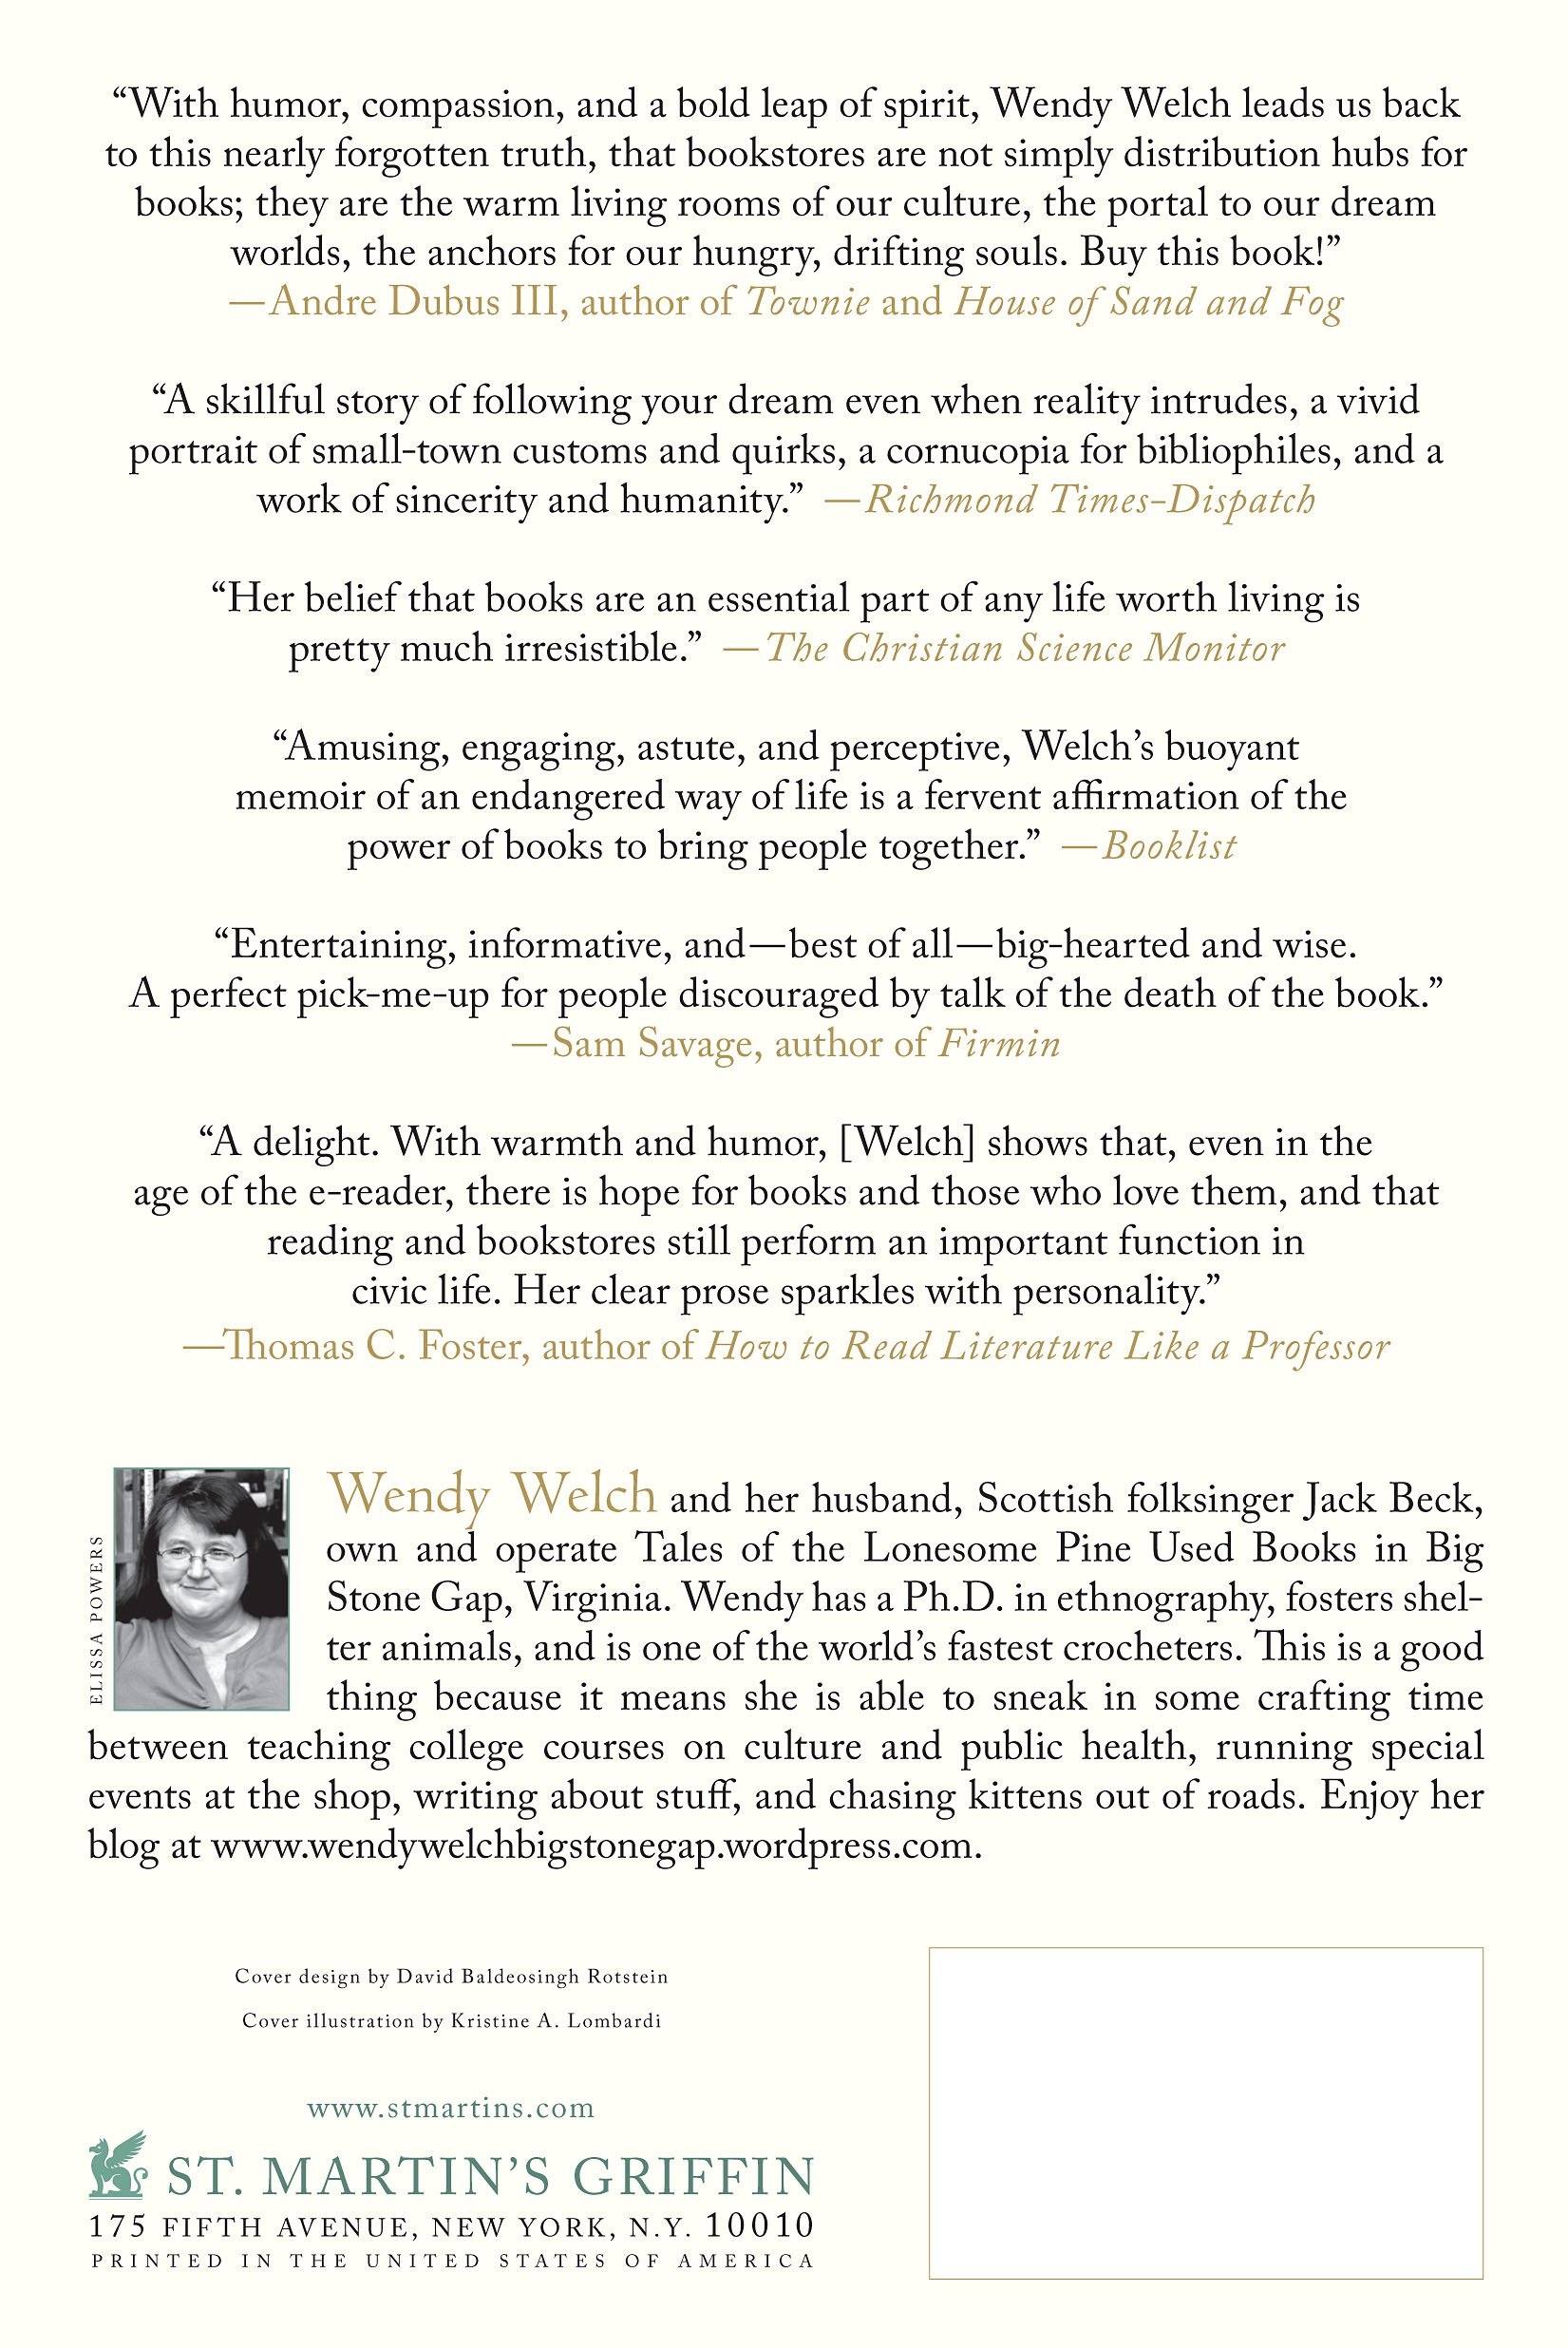 The Little Bookstore Of Big Stone Gap: A Memoir Of Friendship,munity,  And The Uncommon Pleasure Of A Good Book: Wendy Welch: 9781250031617:  Amazon: